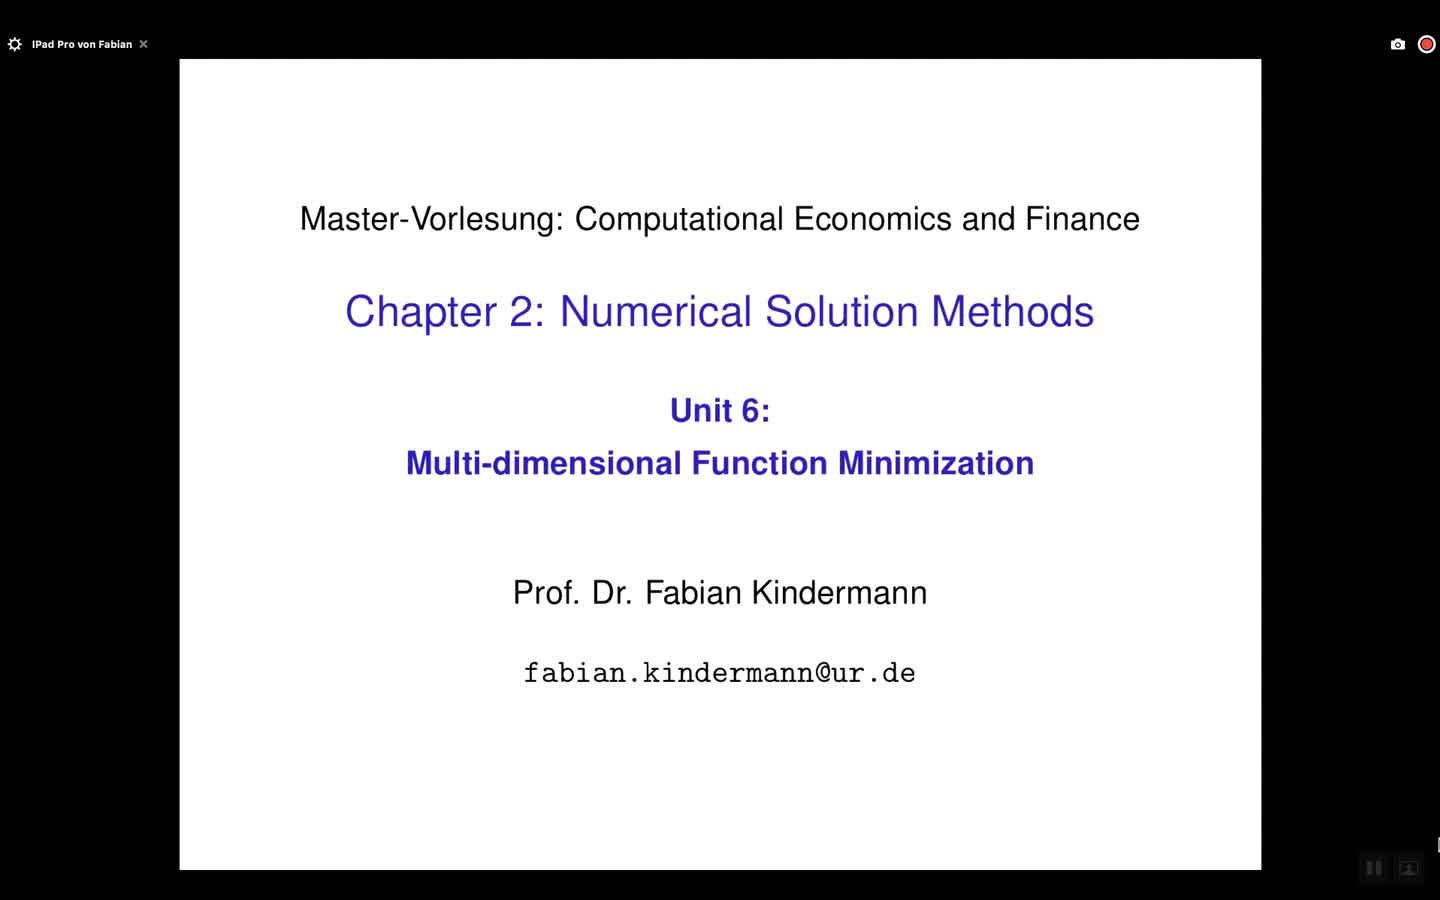 Chapter 2 - Unit 6 - Multi-dimensional Function Minimization